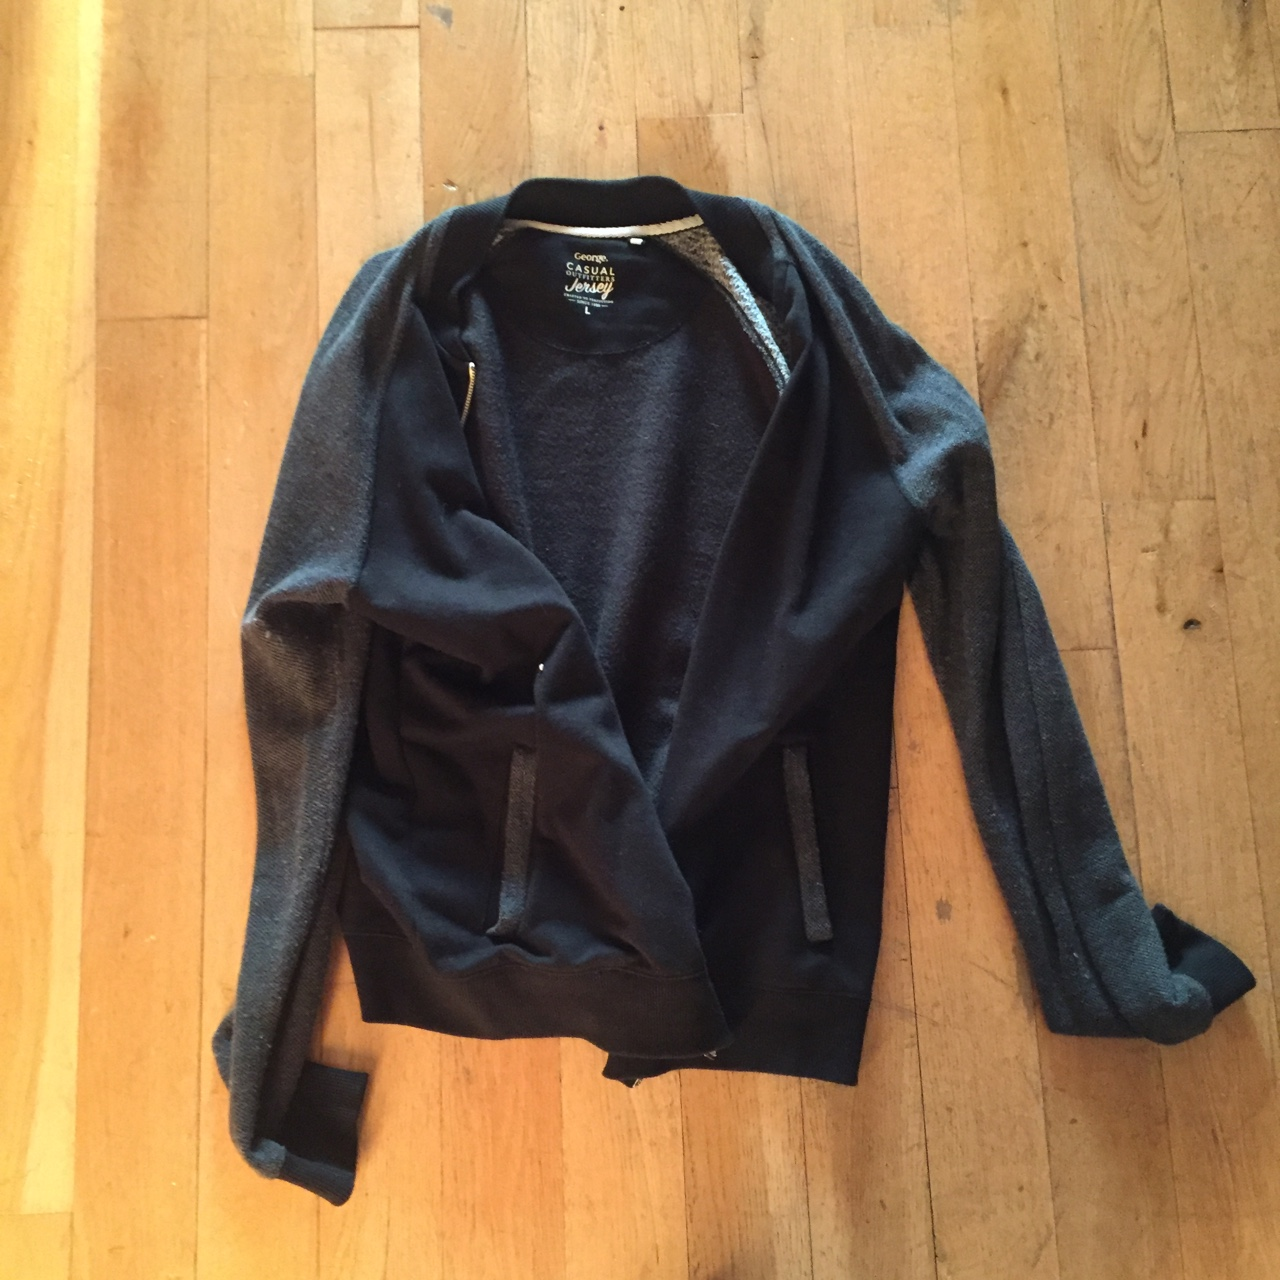 George casual outfitters jersey since